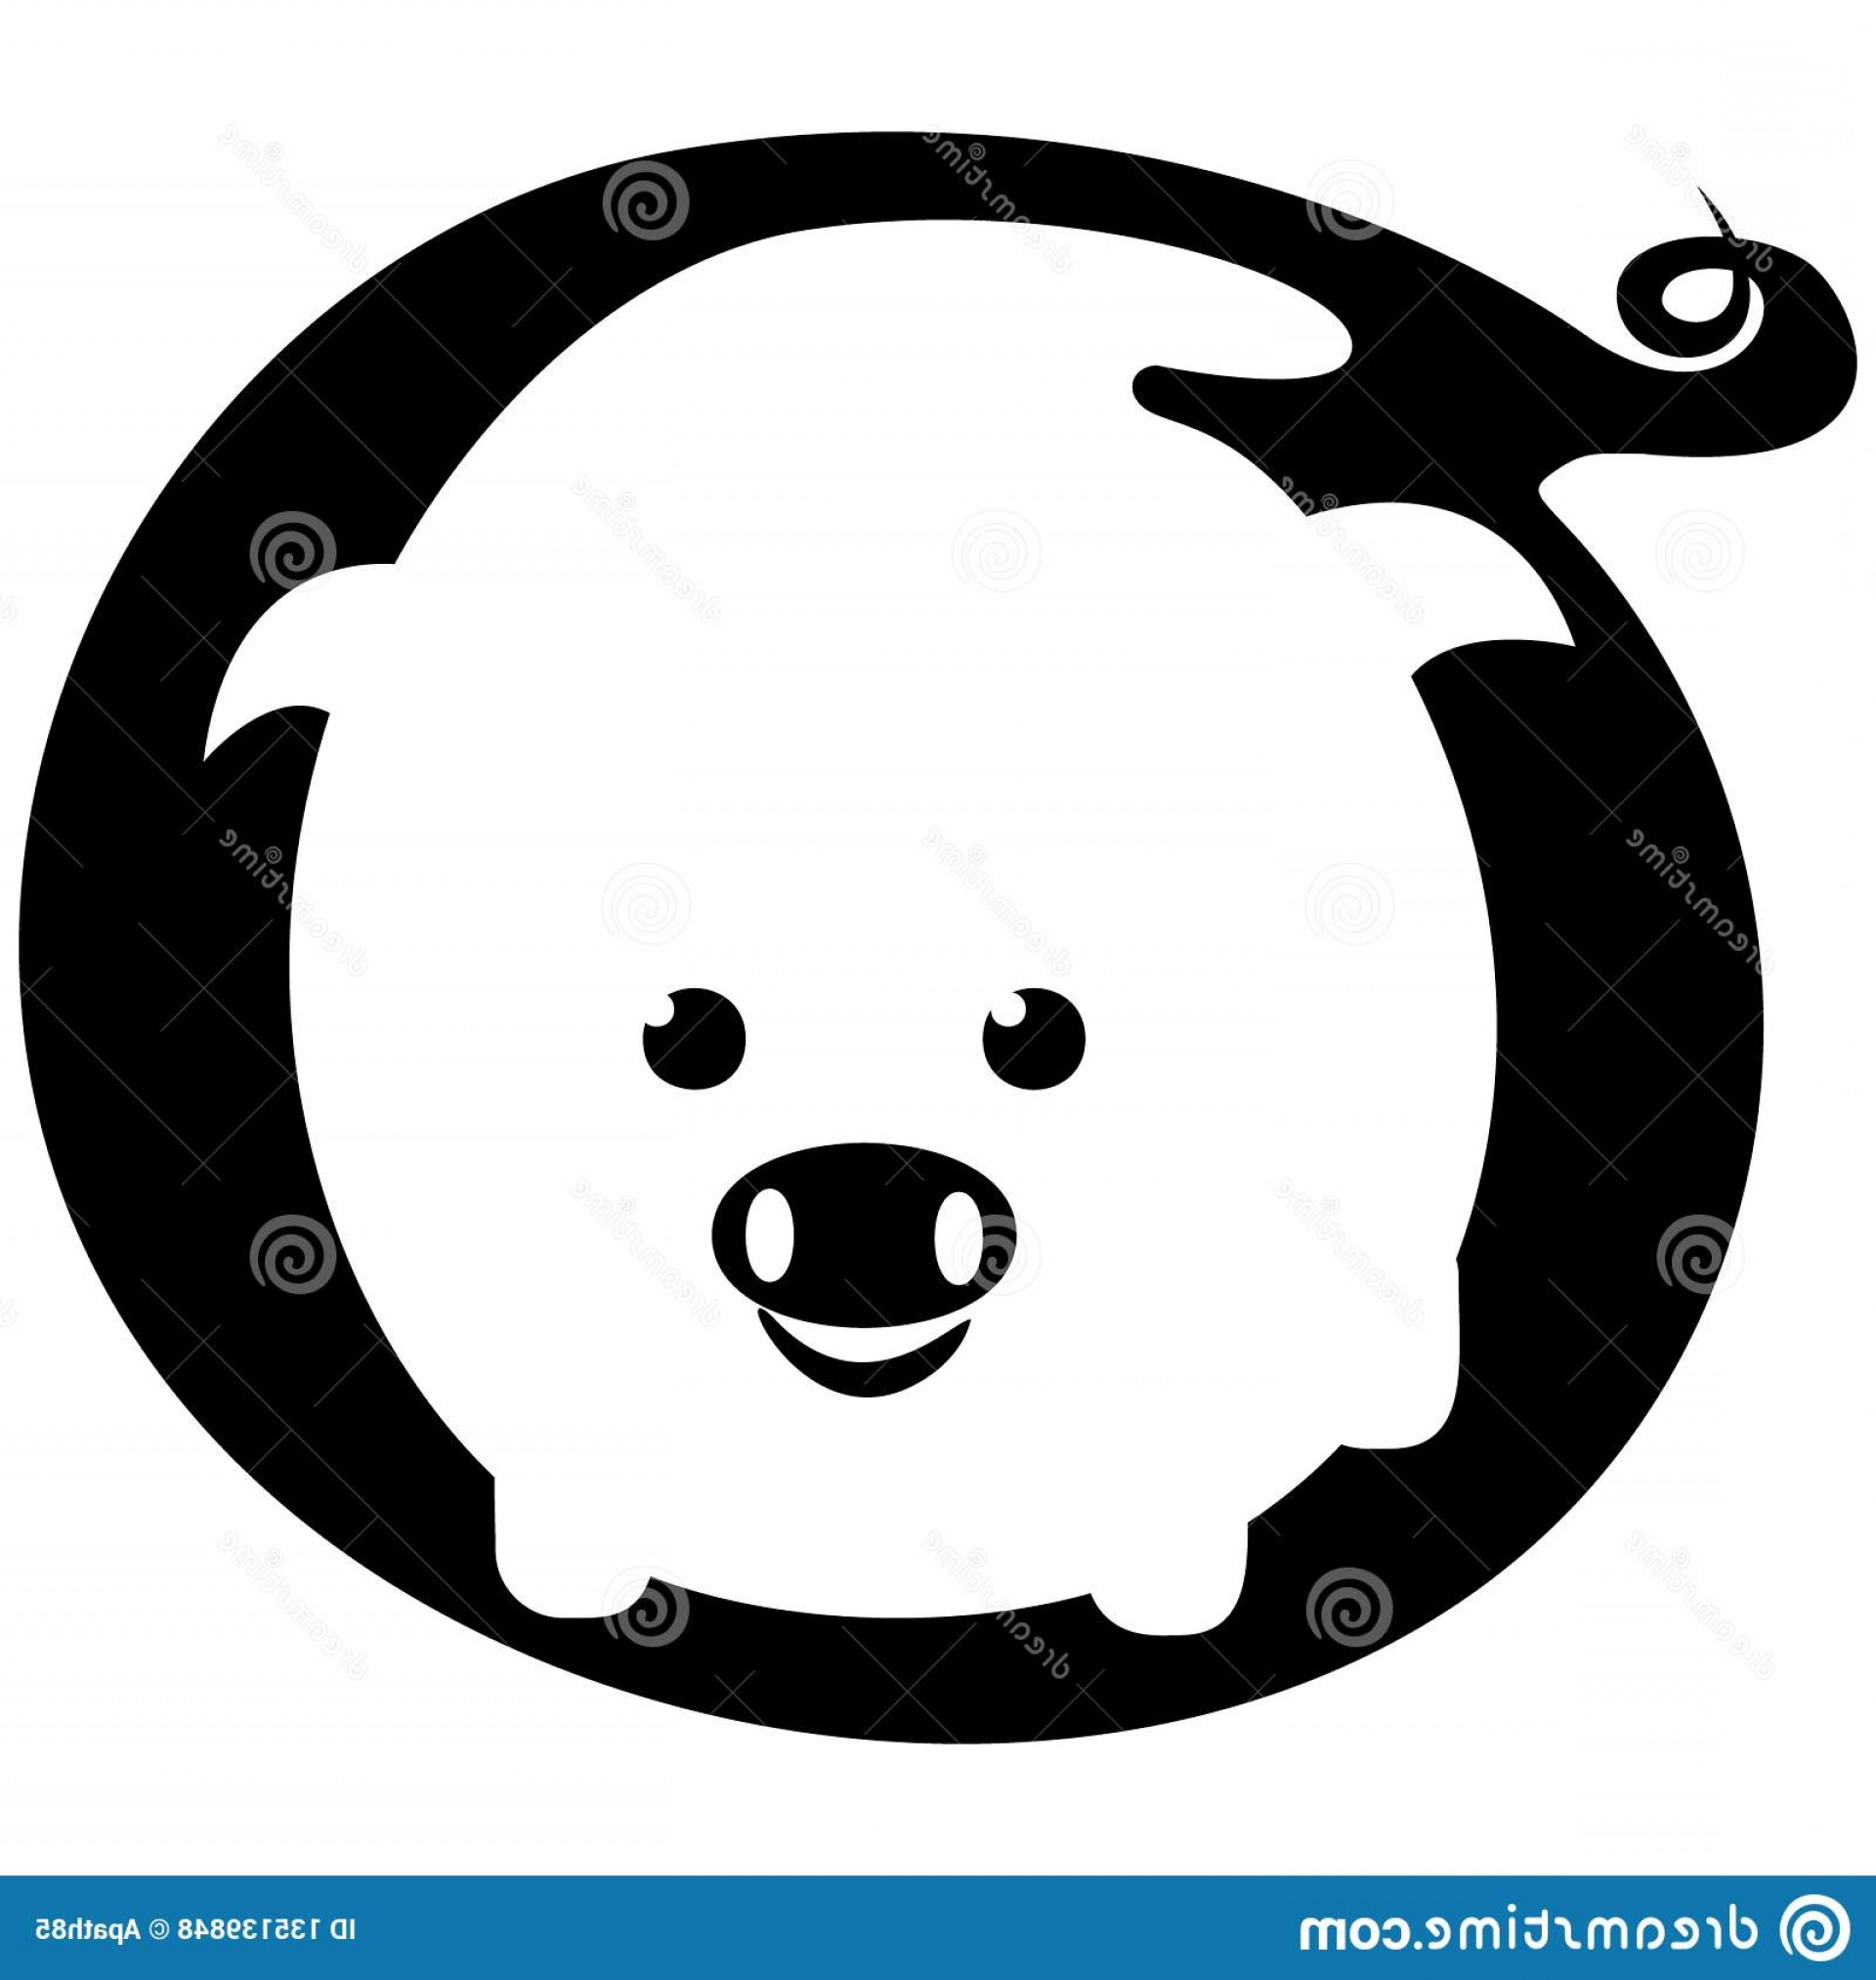 Art Space Logo Vector: White Pig Negative Space Logo Vector Illustration White Pig Negative Space Logo Vector Illustration Eps Image